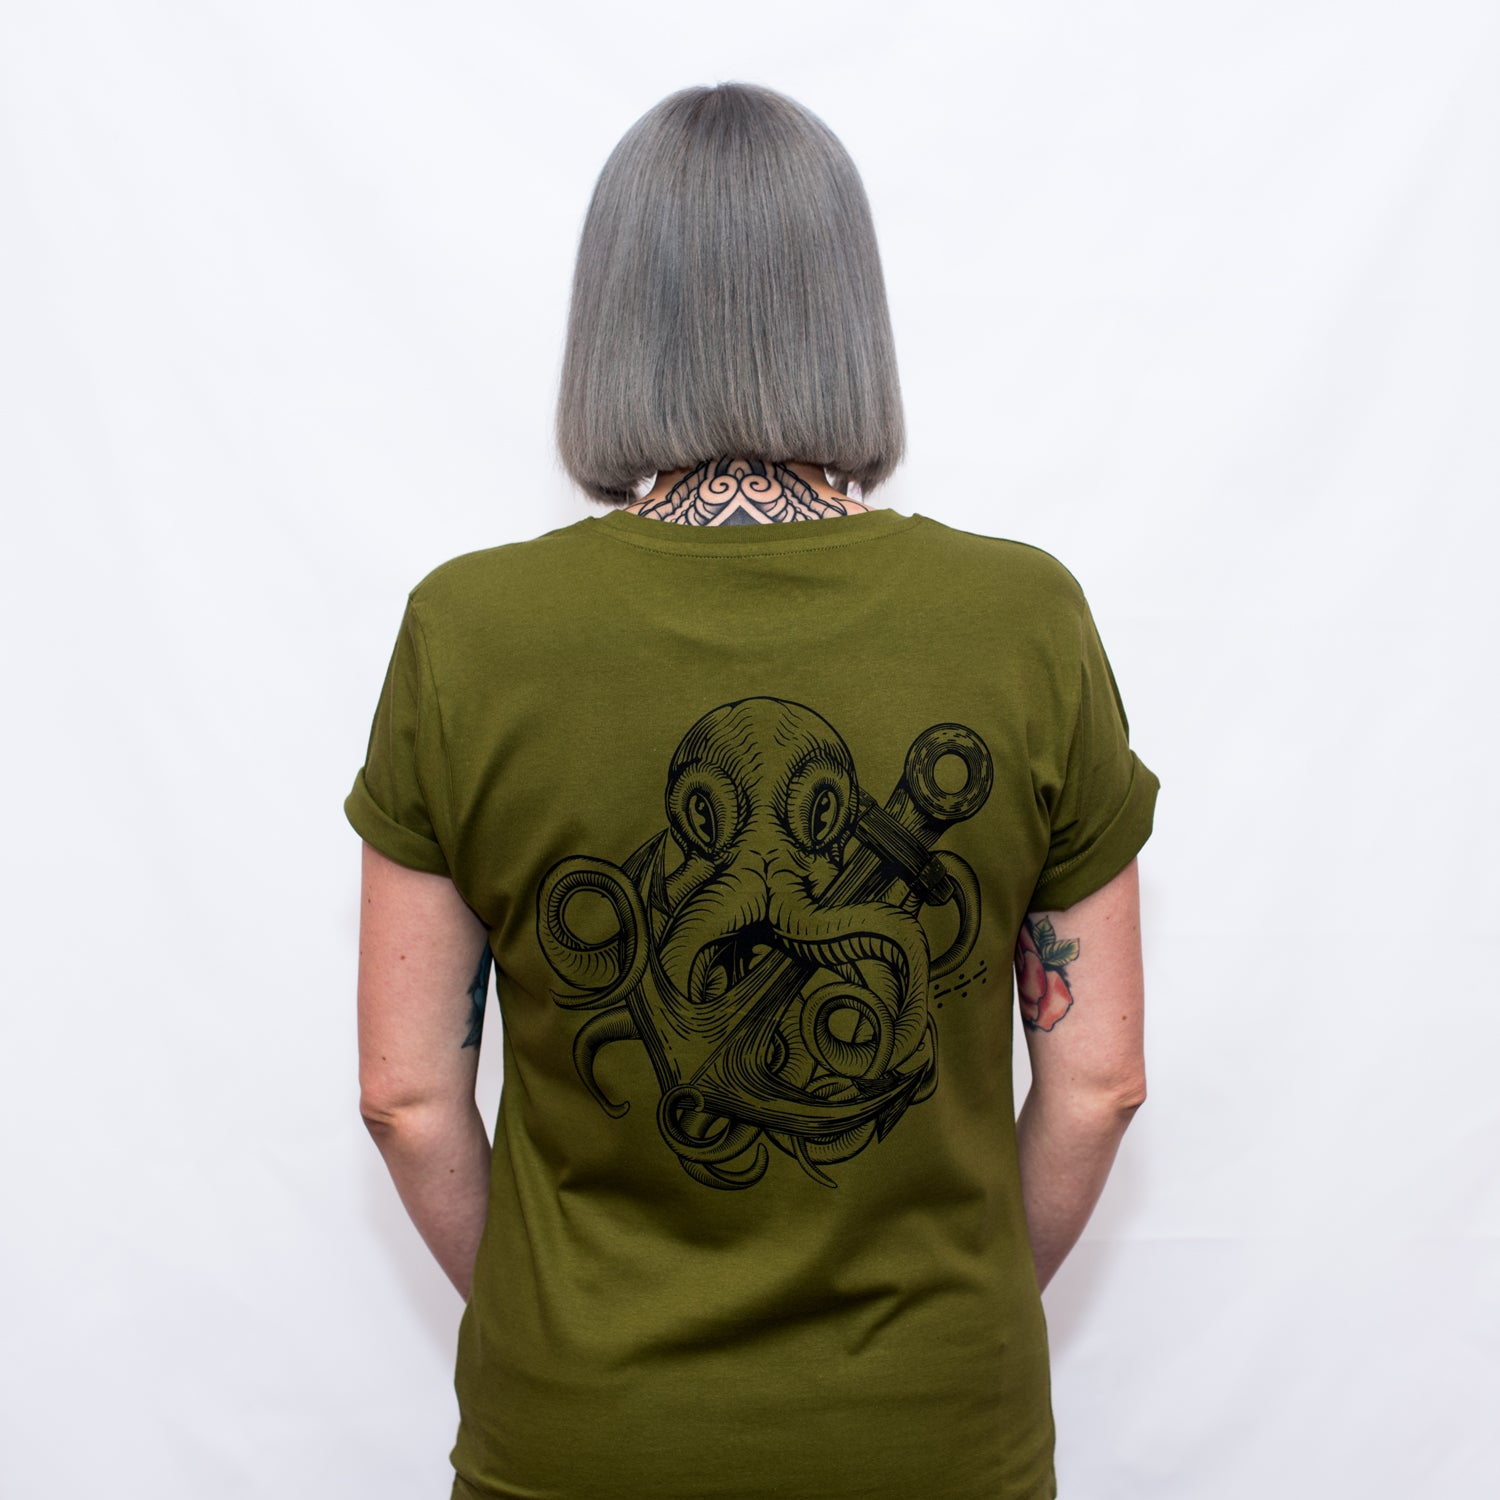 Military Kraken tattoo T Shirt - Save Our Souls